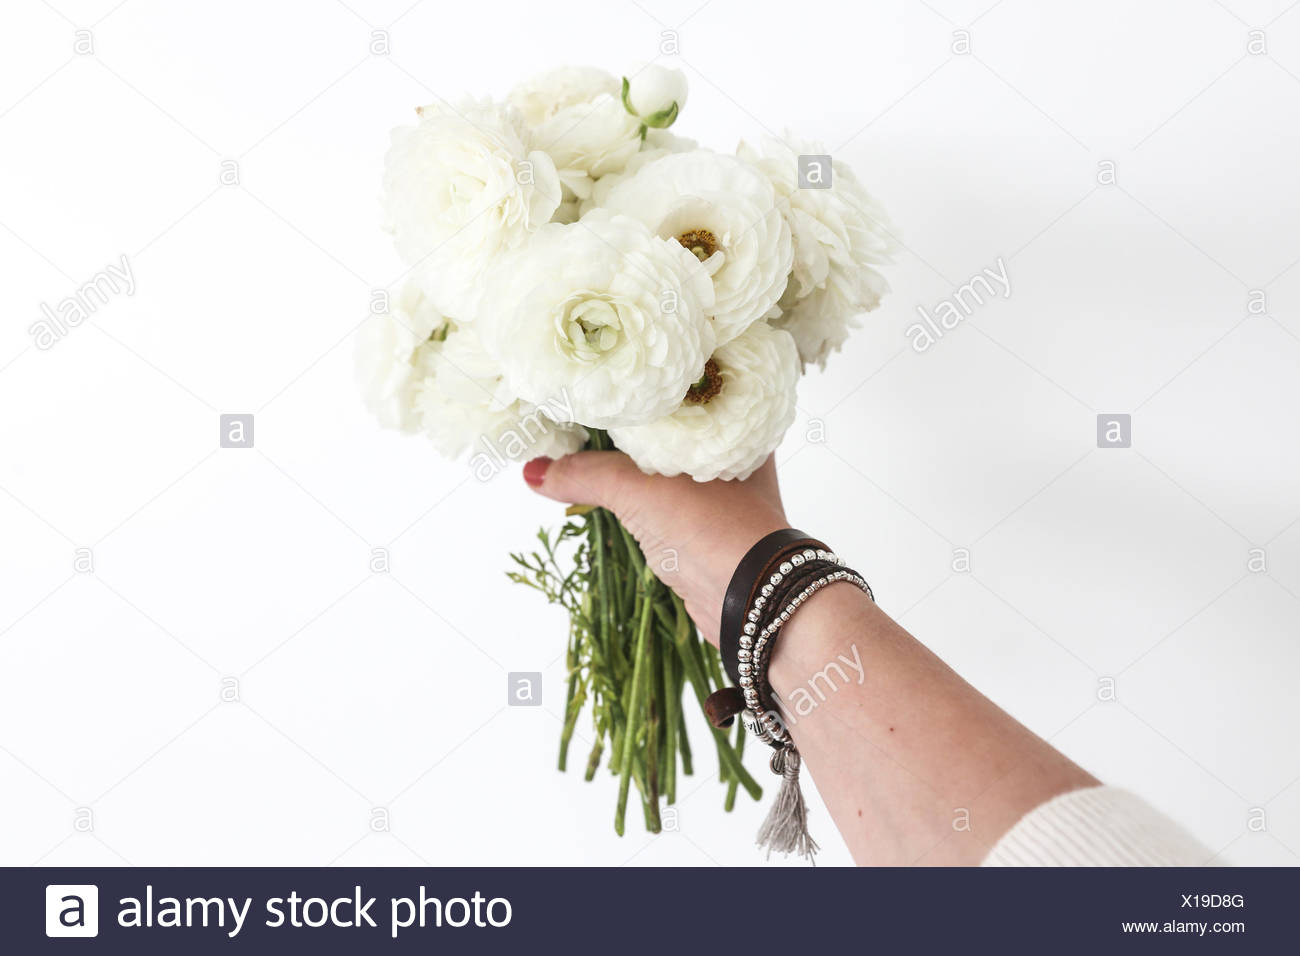 Womans Hand Holding A Bouquet Of White Ranunculus Flowers Stock